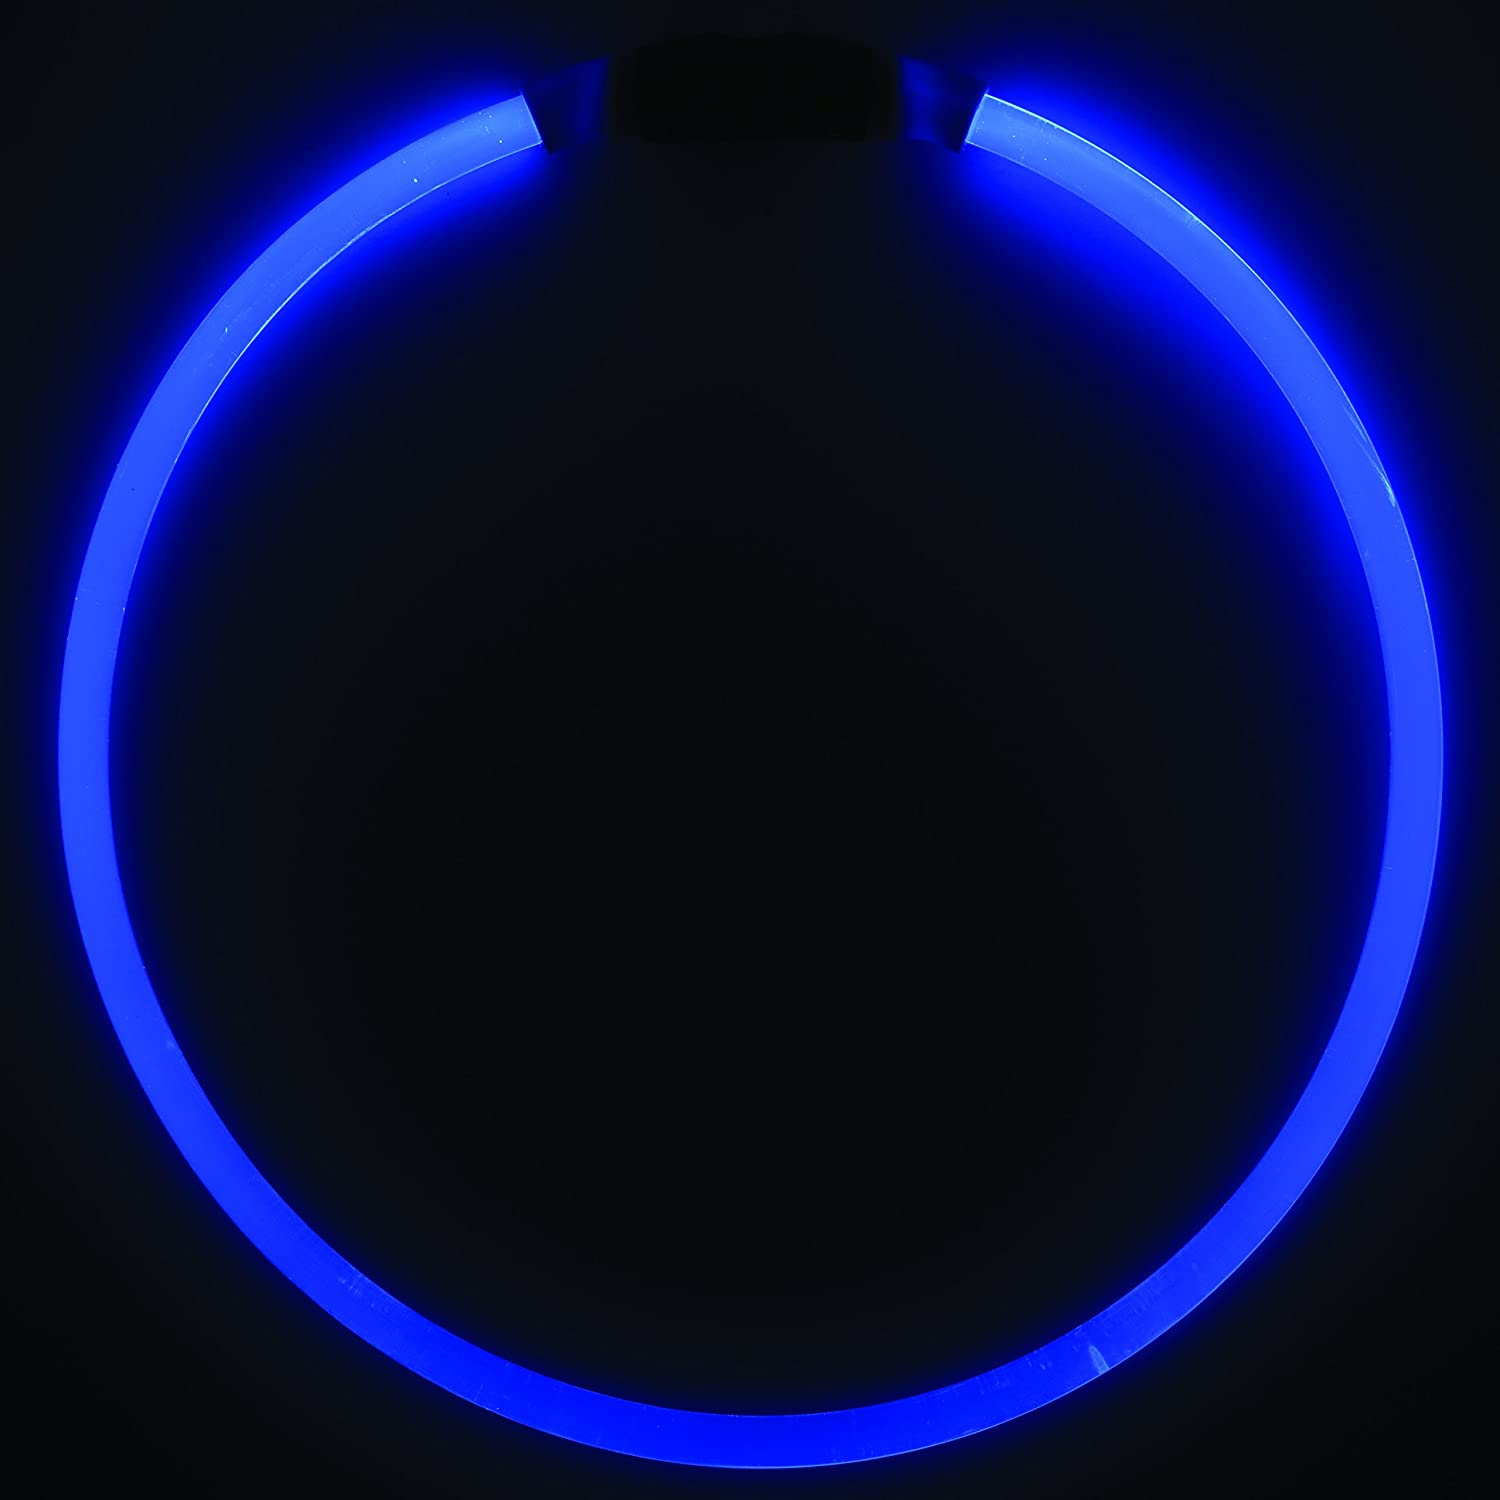 Bright Reusable Glow Necklaces With LED Technology-Blue Nite Ize NiteLife LED Necklace